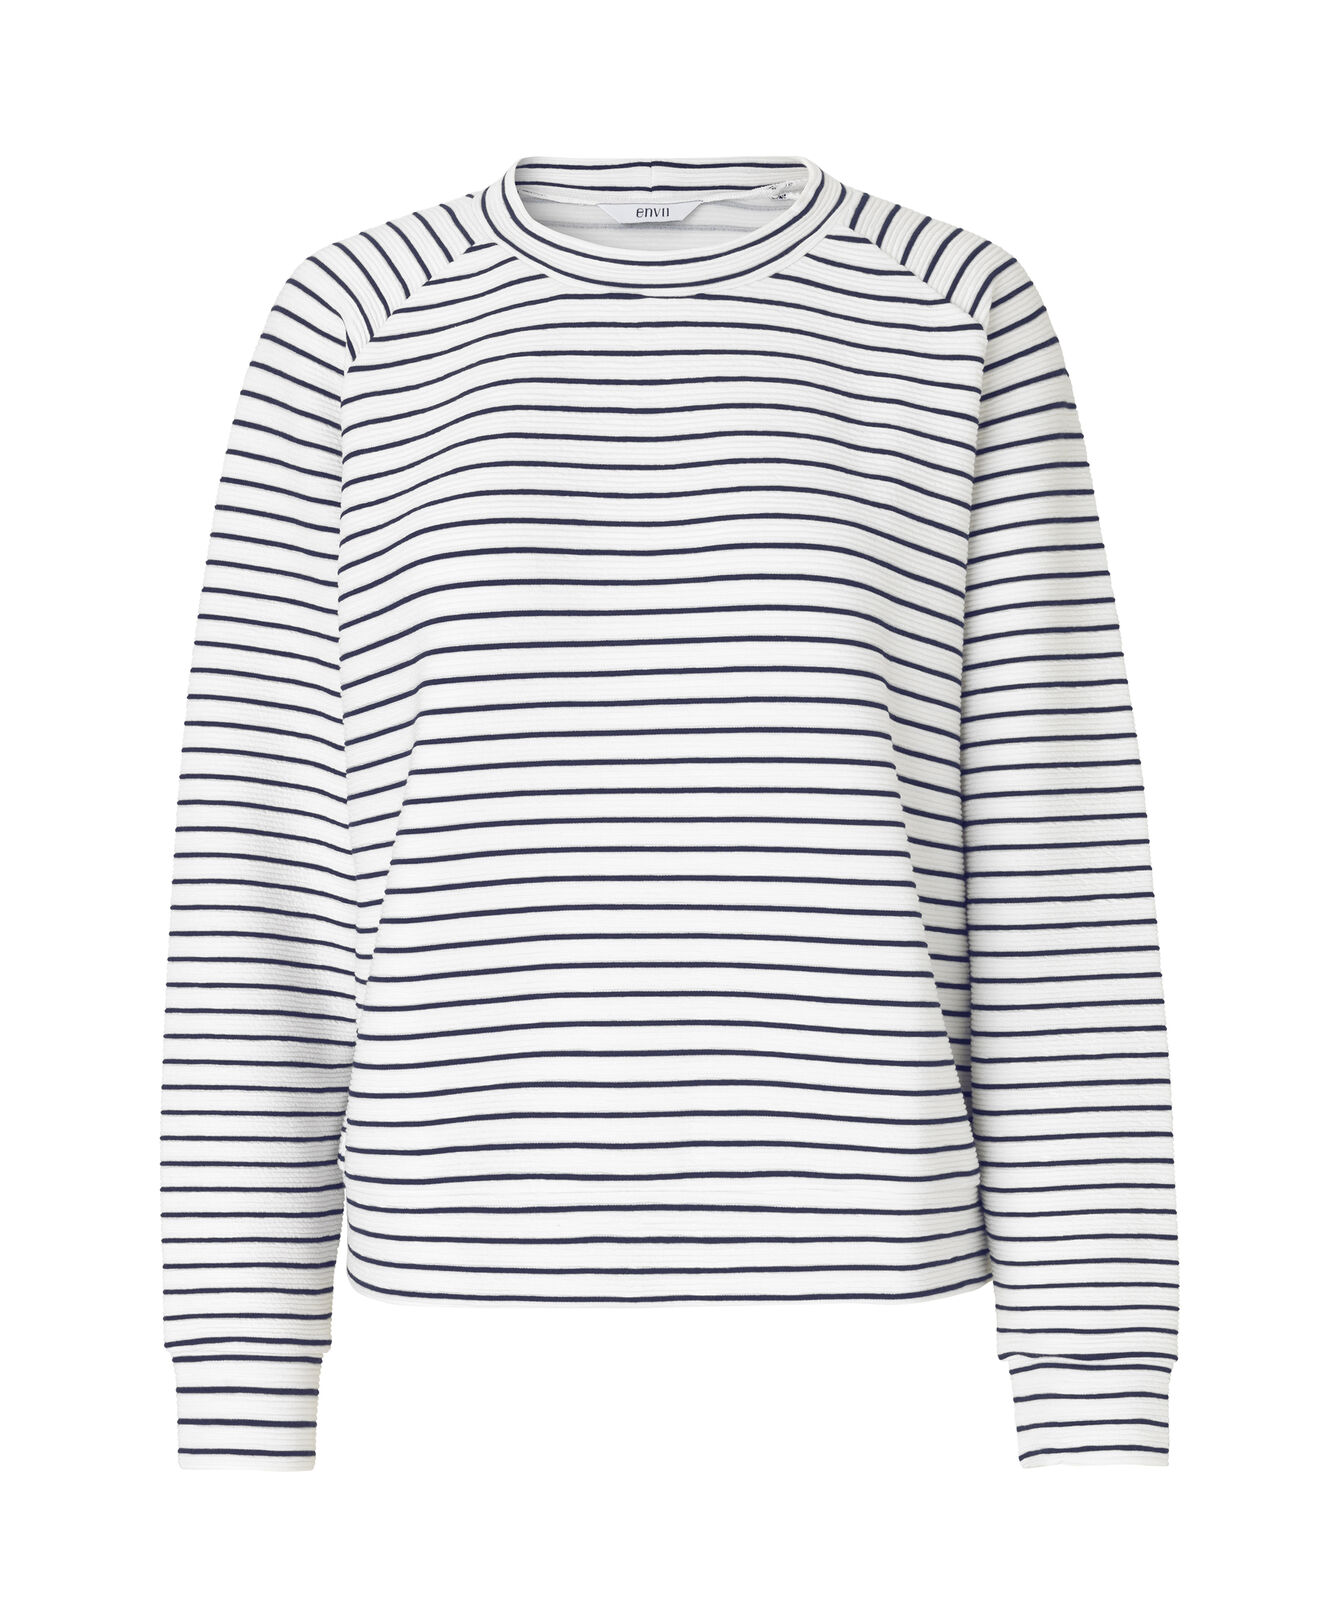 ENNANI LS SWEAT 5921, GARDENIA NAVY STRIPE